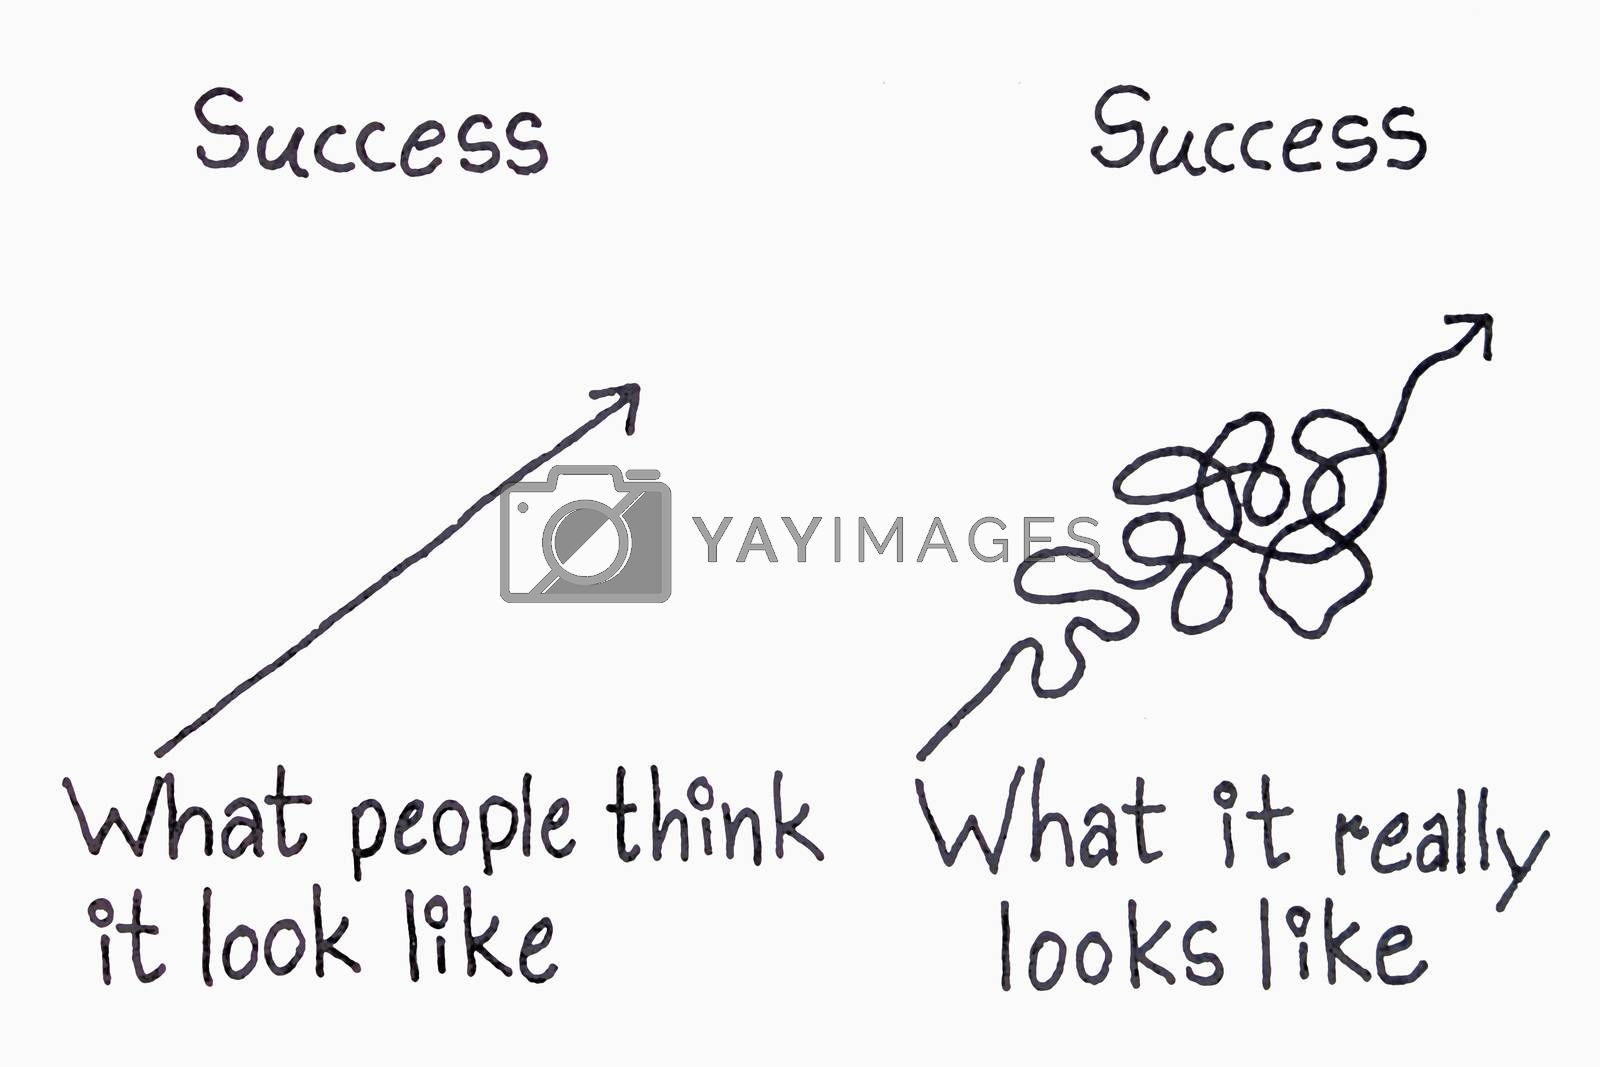 Royalty free image of success think and reality concept by yands